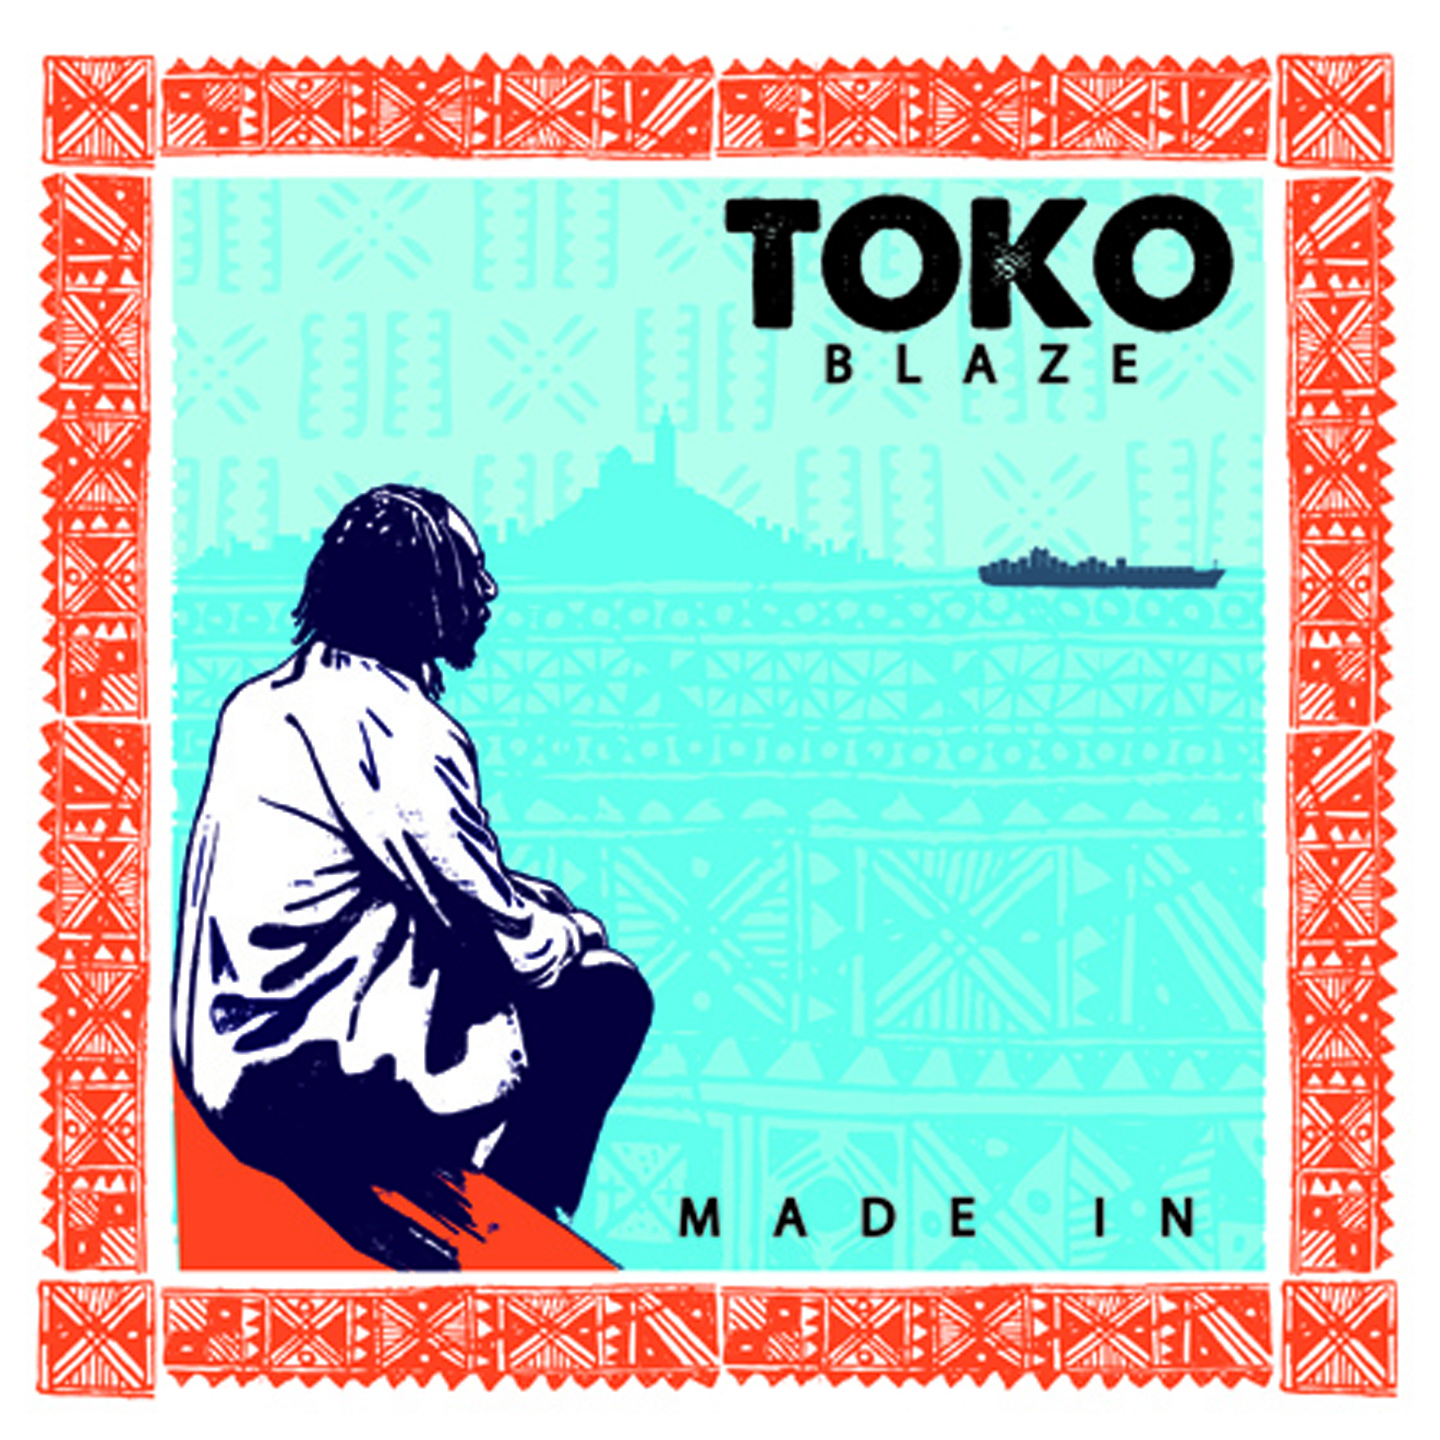 Toko Blaze - Made in